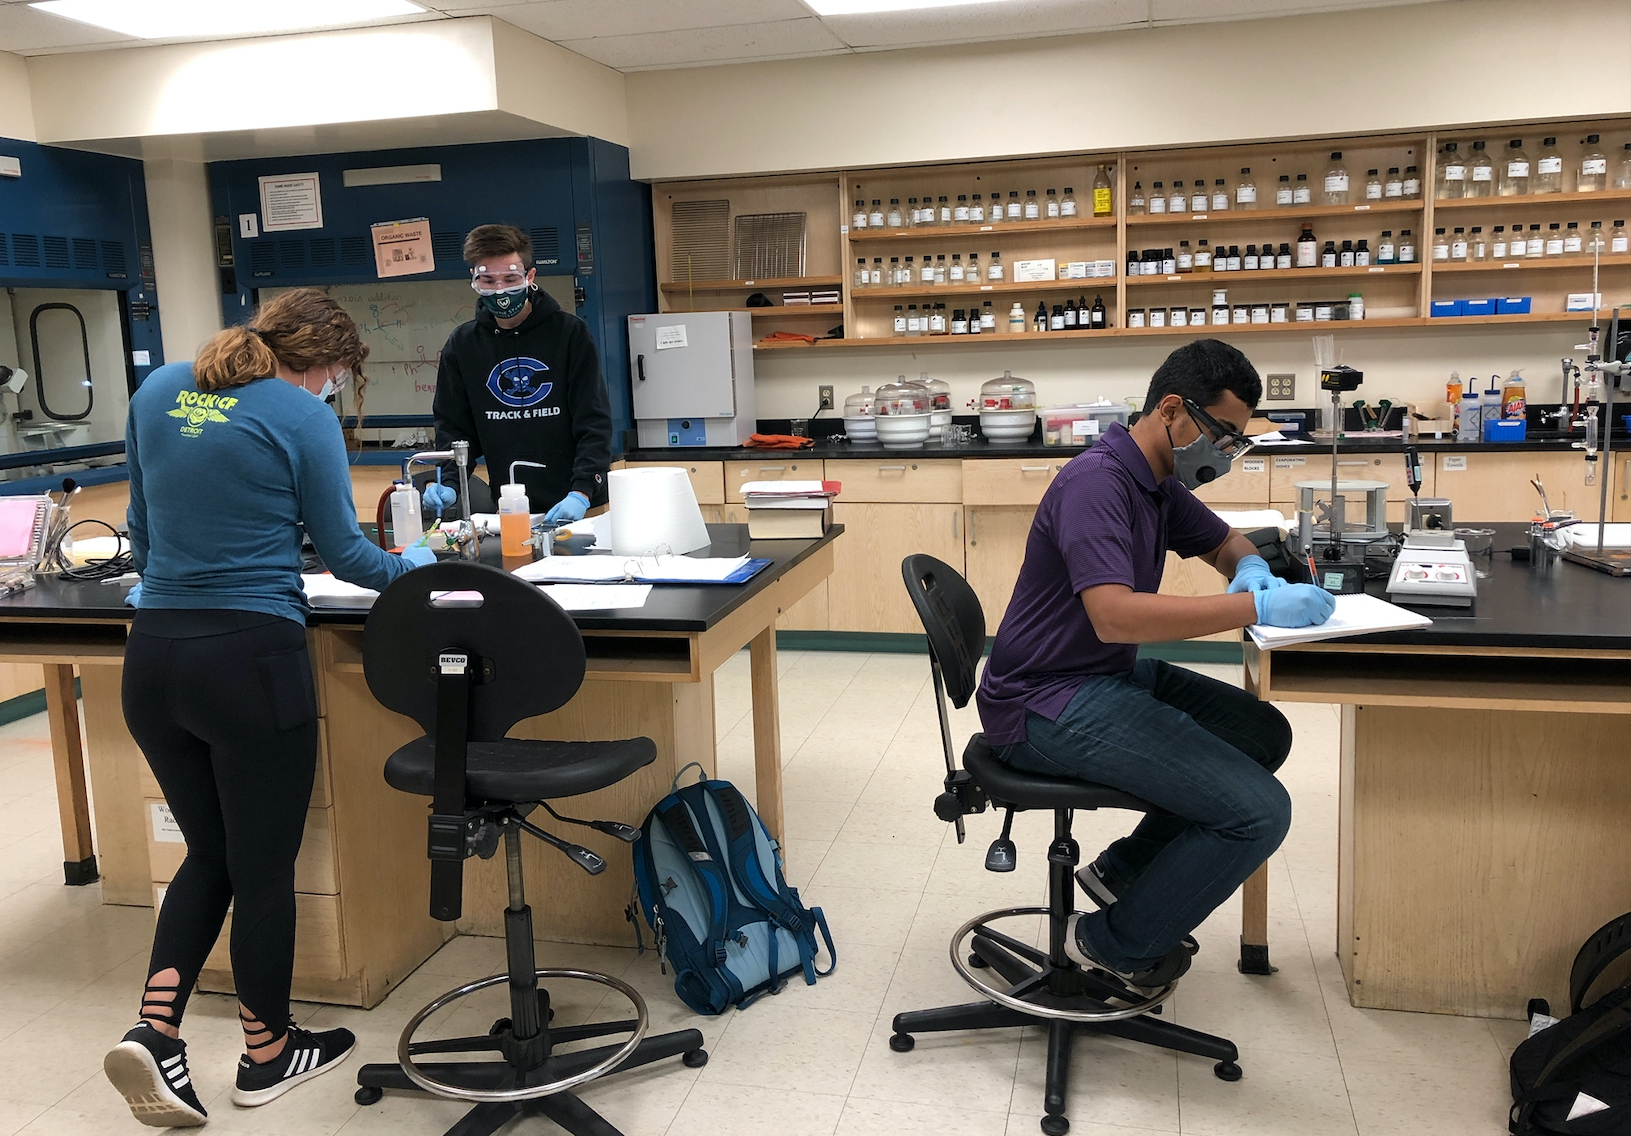 Students in Organic Chemistry Lab following social distancing measures and other additional safety protocols. Photo taken by Yasmeen Berry